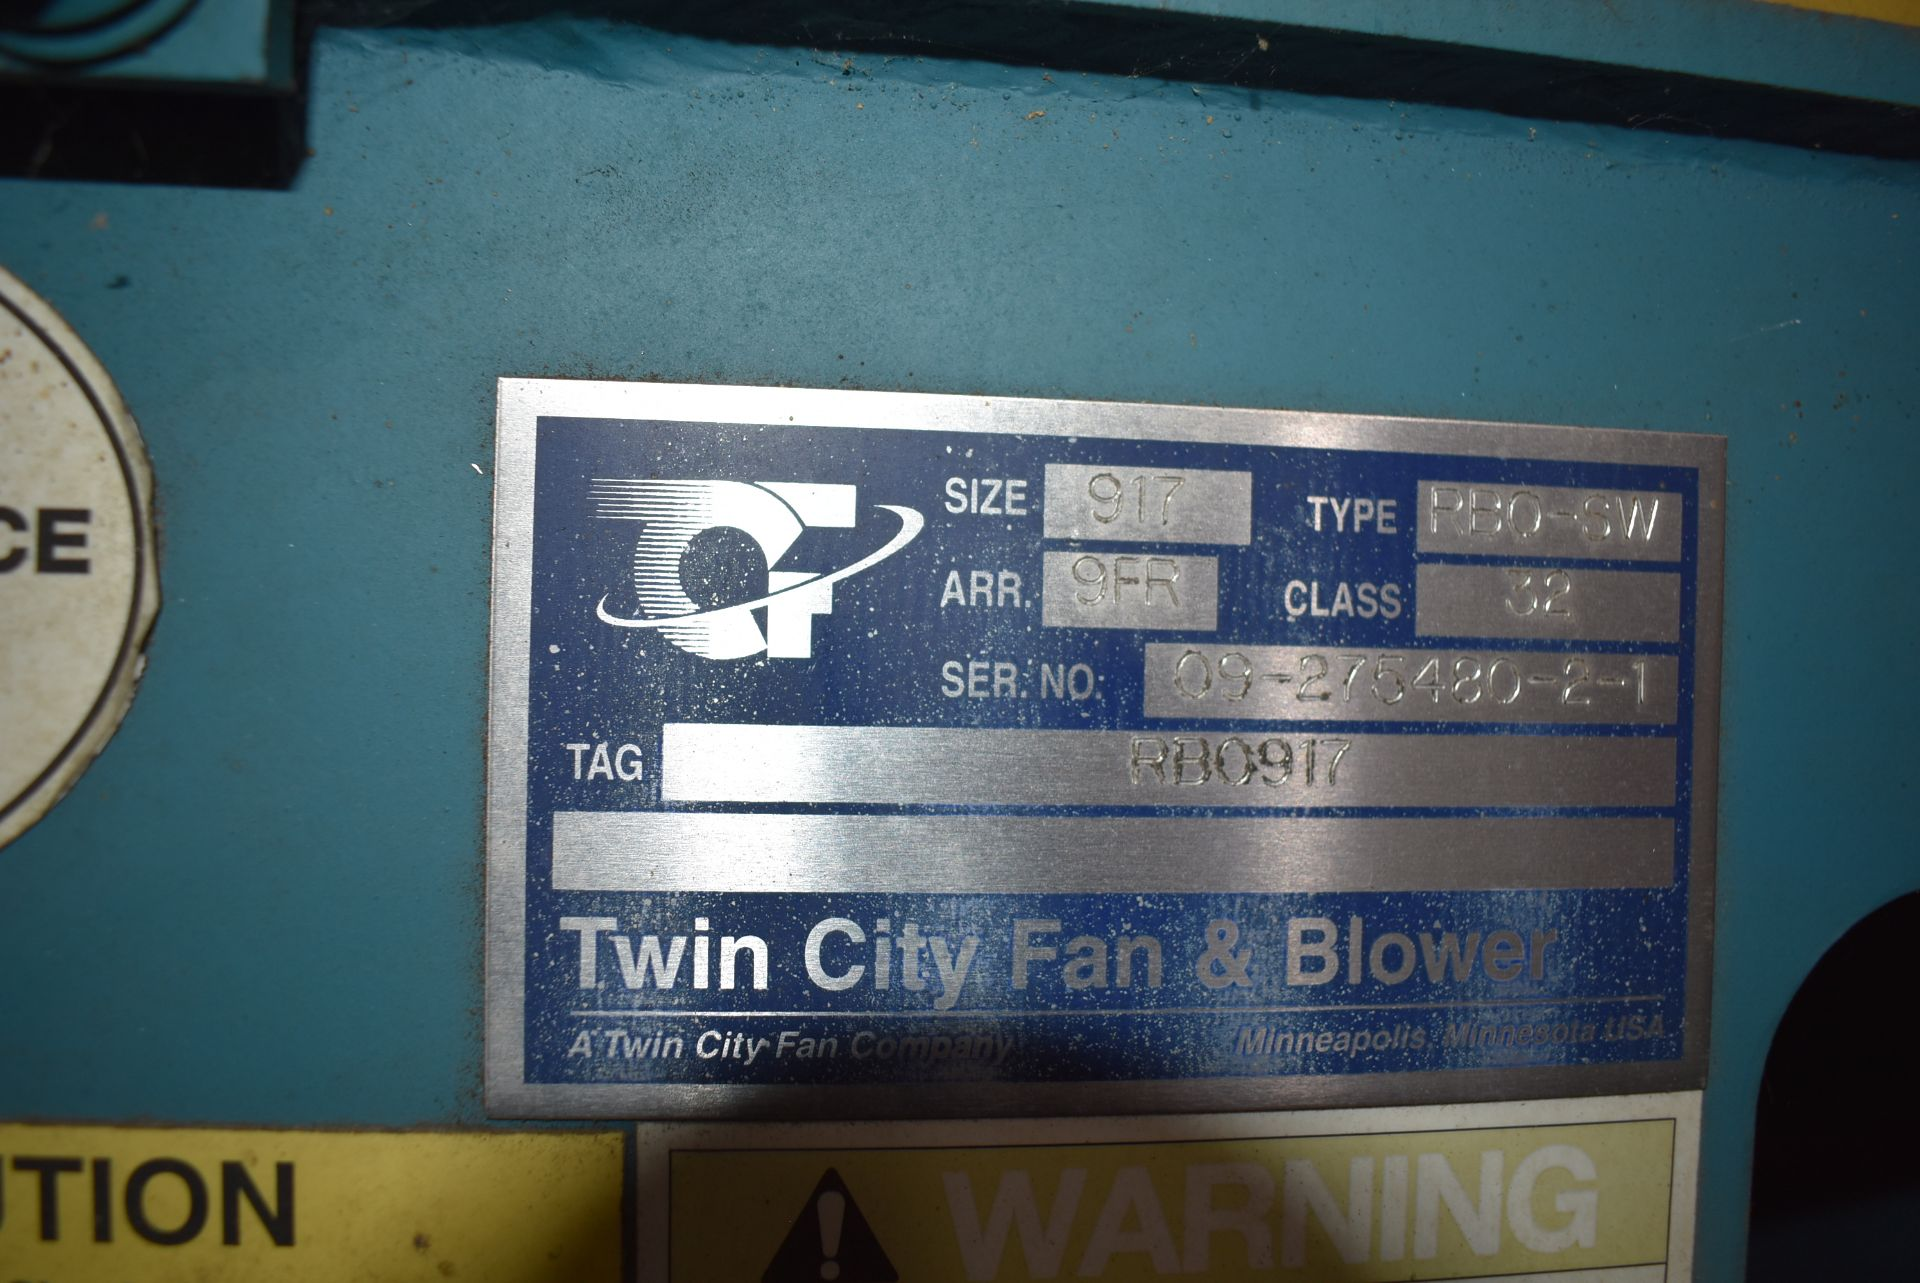 Twin City Type RBO-SW Blower, Size 917 w/30 HP Motor - Image 2 of 3